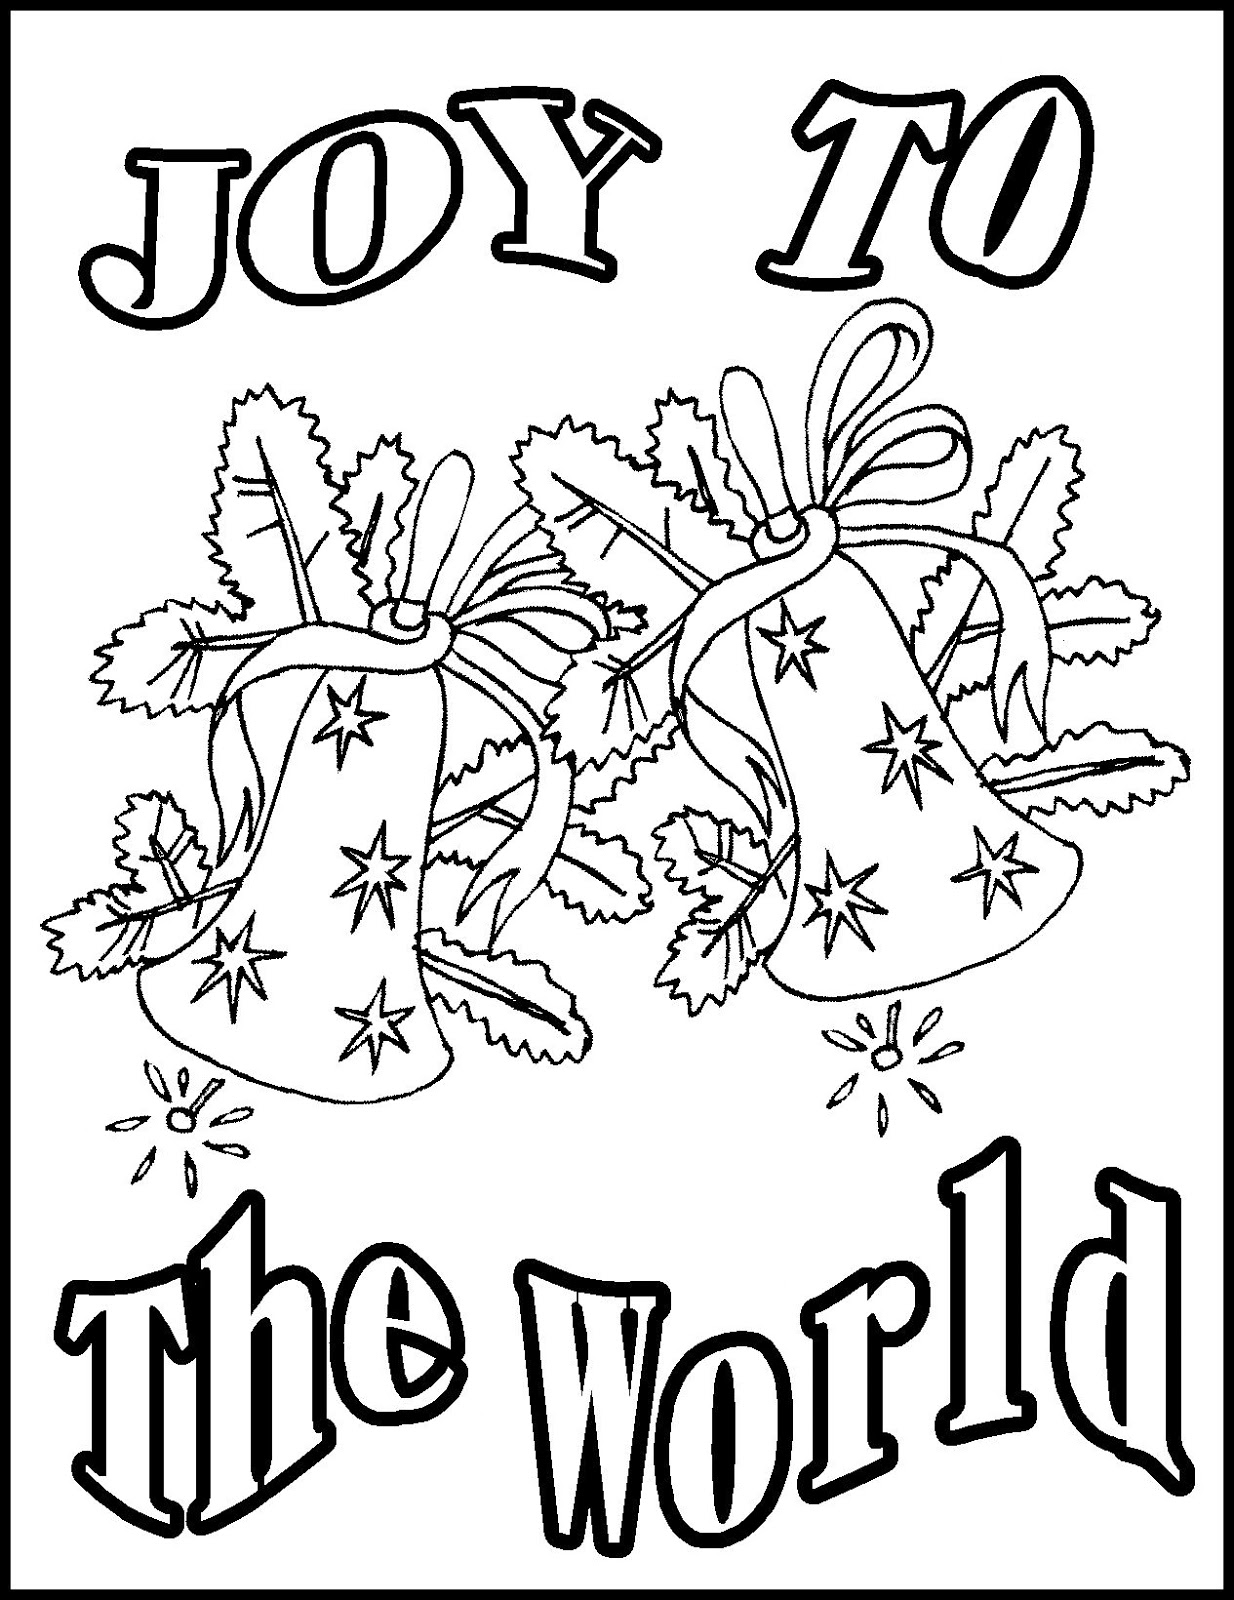 Free Christian Christmas Coloring Pages Printable With Fresh Kids